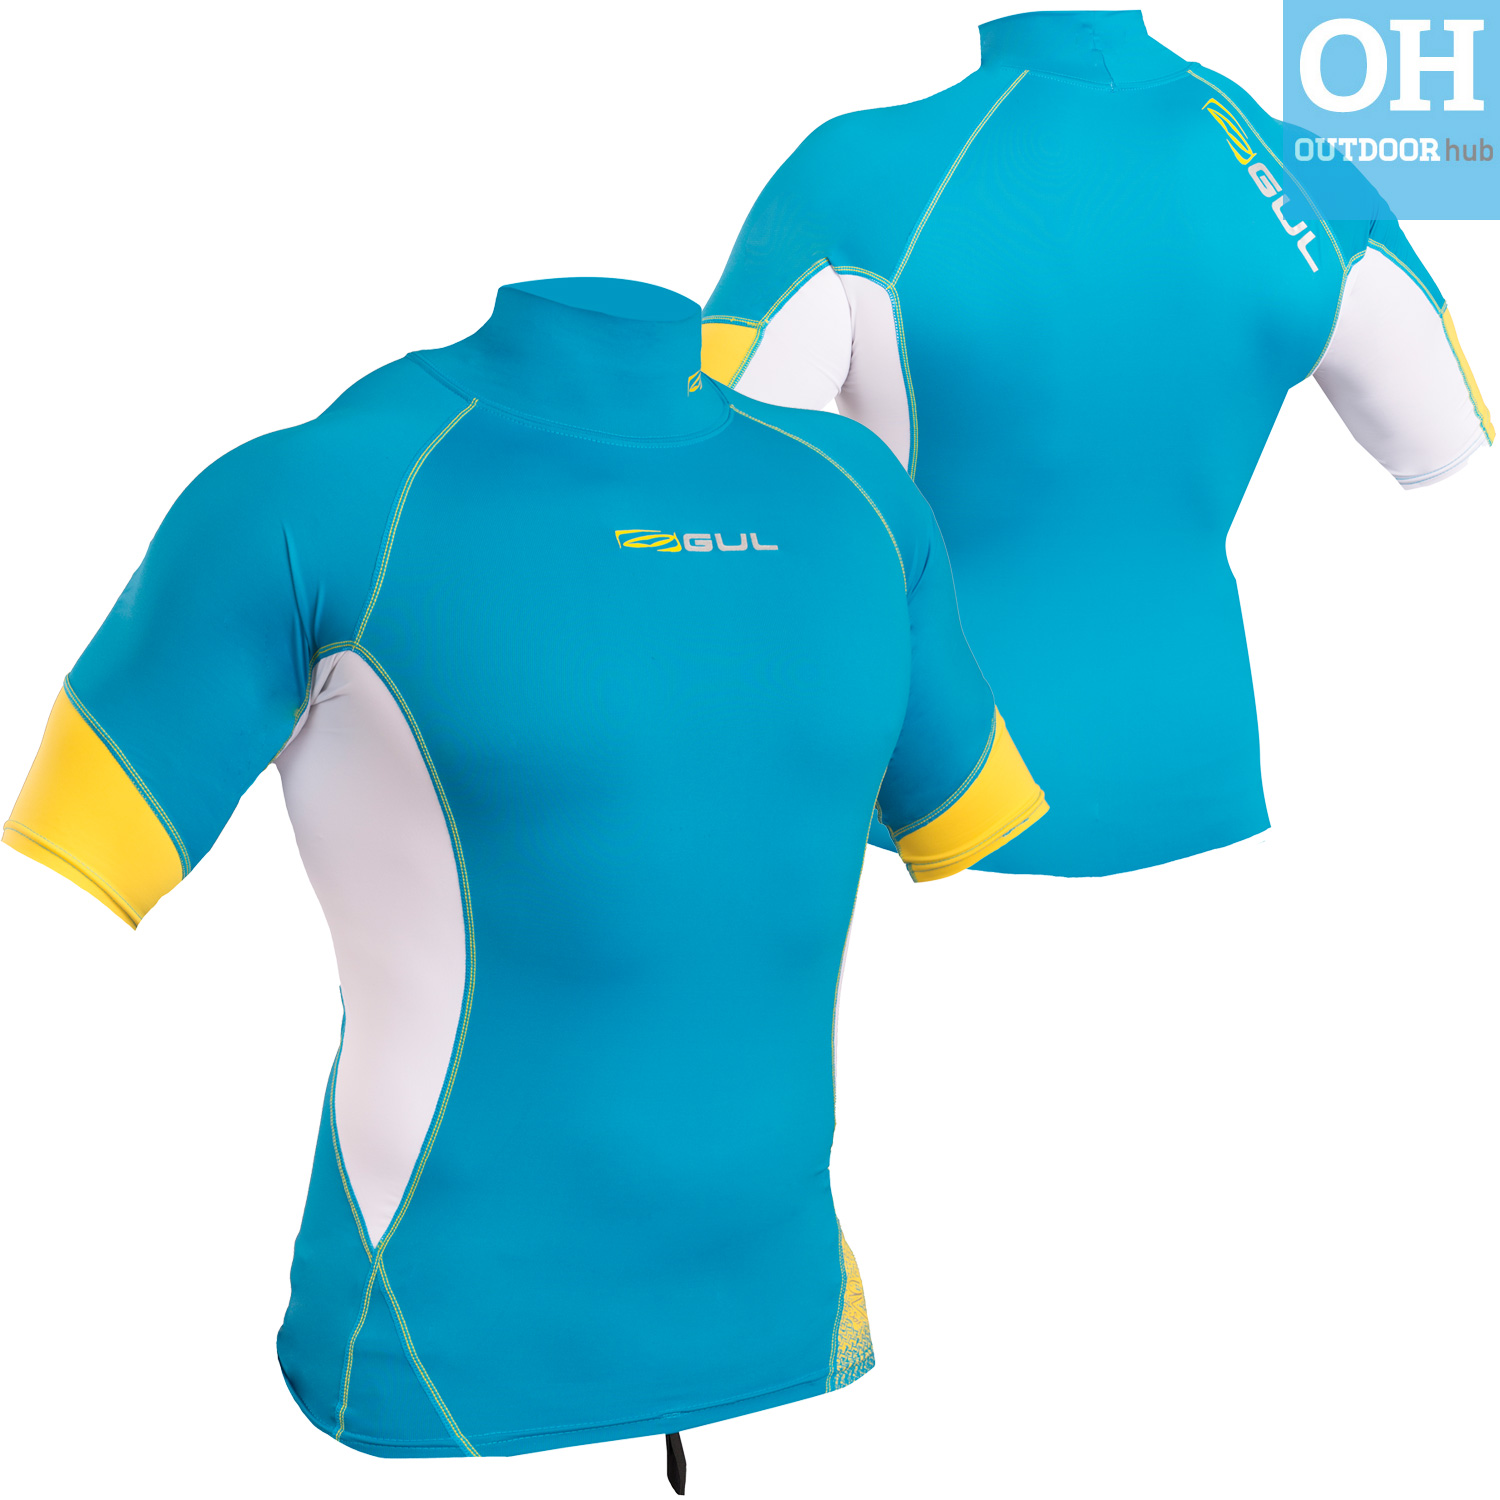 Gul-Xola-Mens-Short-Sleeve-Rash-Guard-Vest-Wetsuit-Top-UV-50-Surf-Swim-Dive thumbnail 21